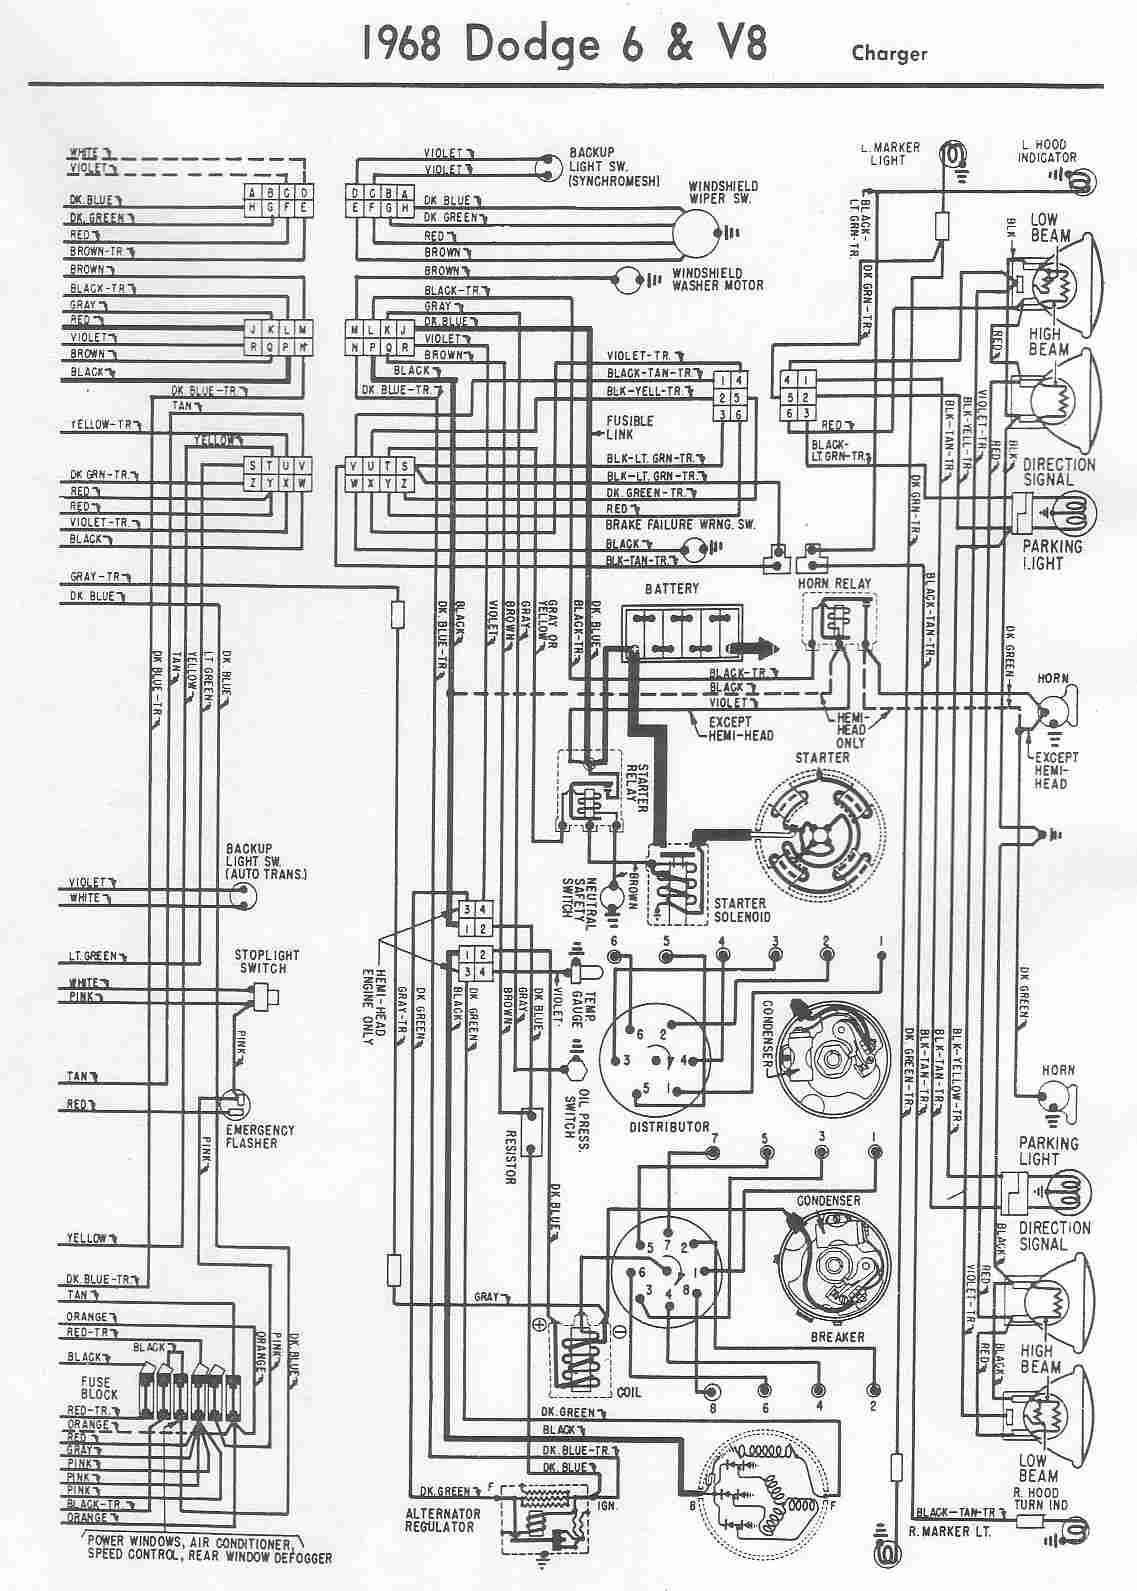 charger electrical wiring diagram of 1968 dodge 6 and v8?t=1508404771 dodge car manuals, wiring diagrams pdf & fault codes 1970 dodge coronet wiring diagram at bakdesigns.co